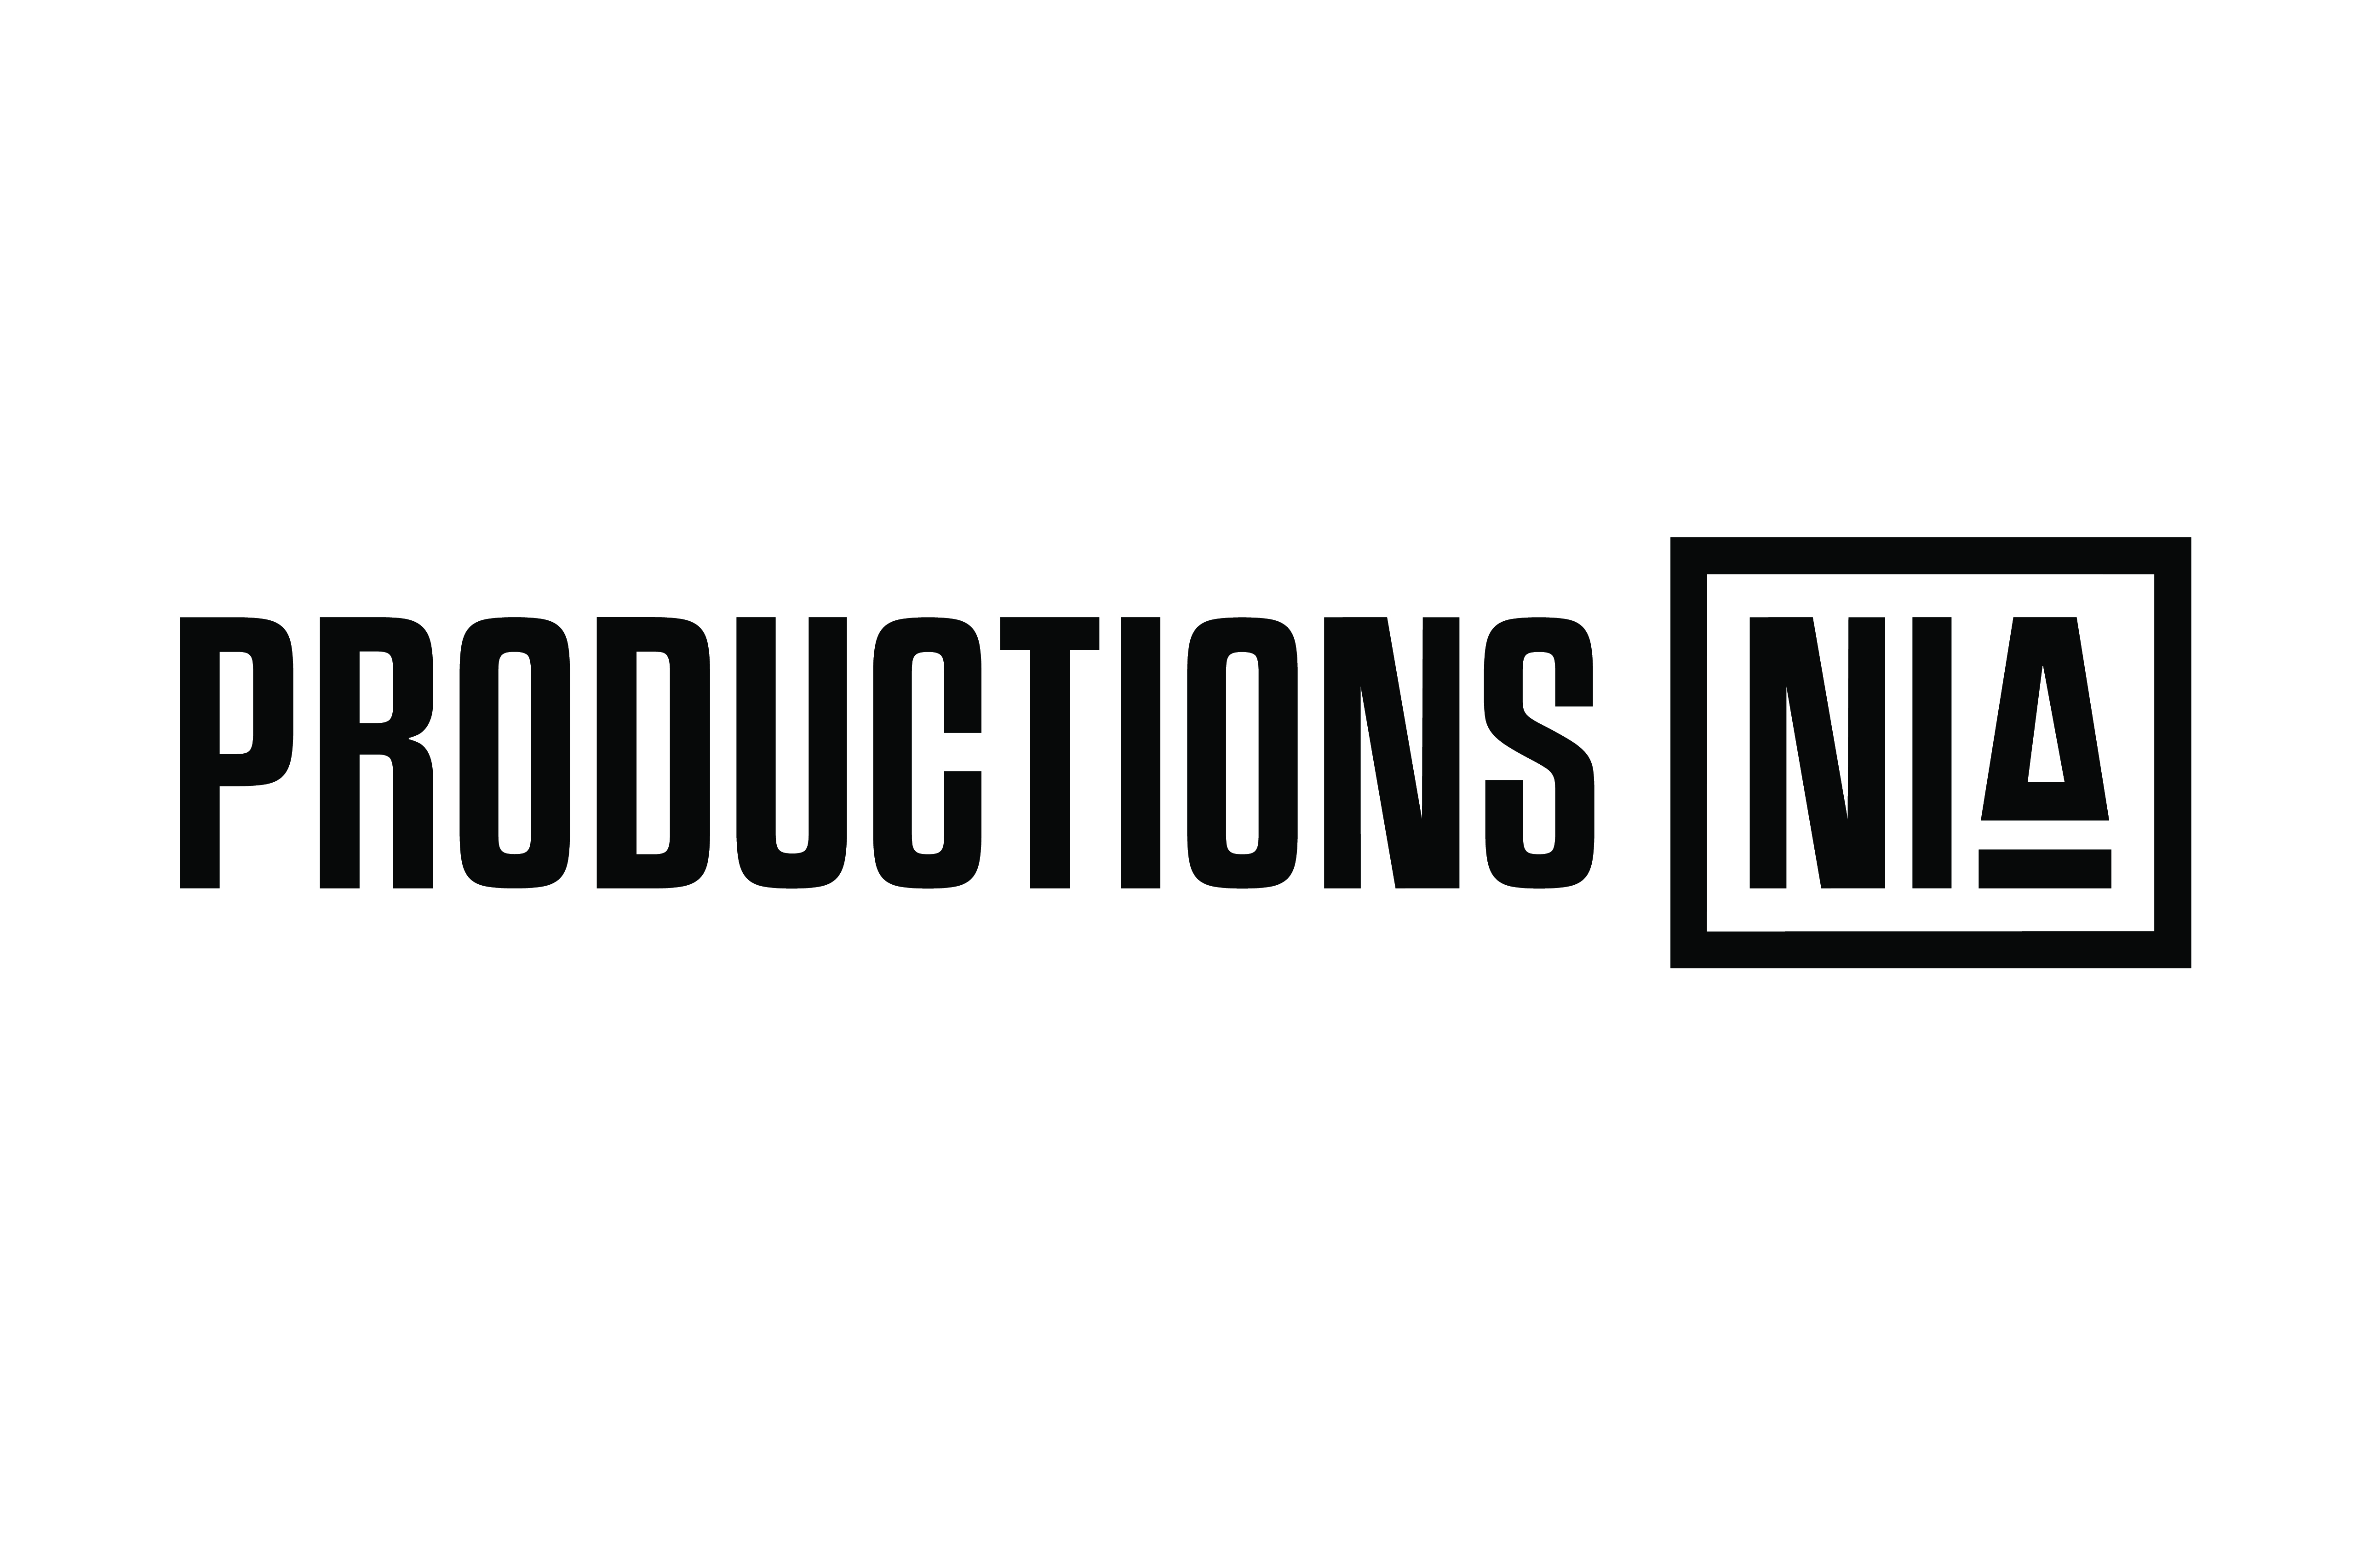 Productions Nia